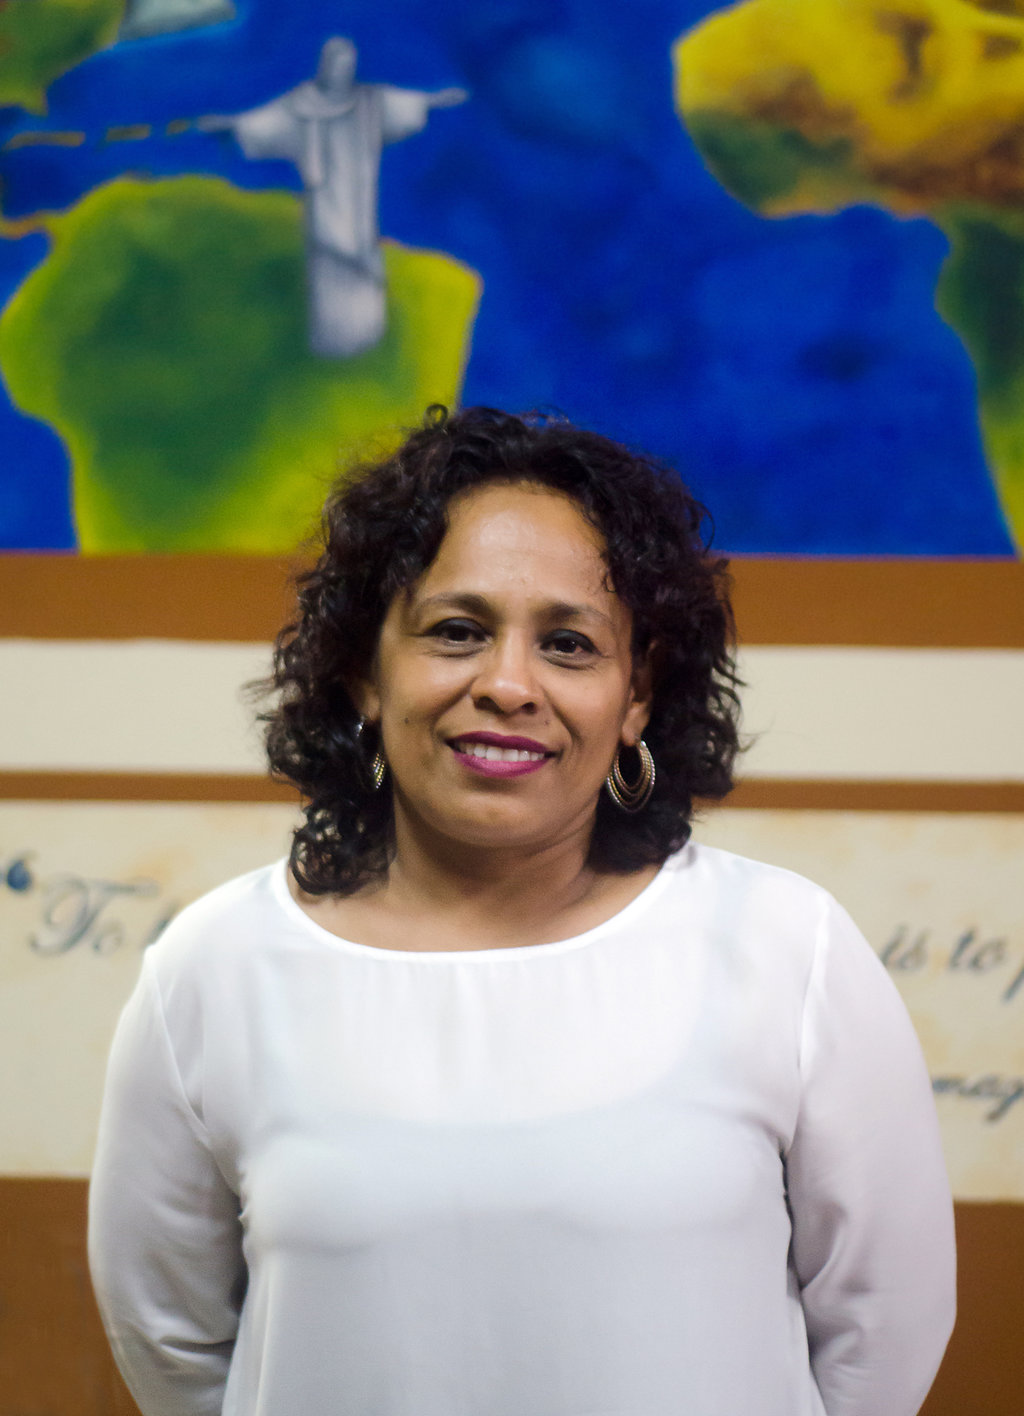 DR. GLORIA ULLOA - Director